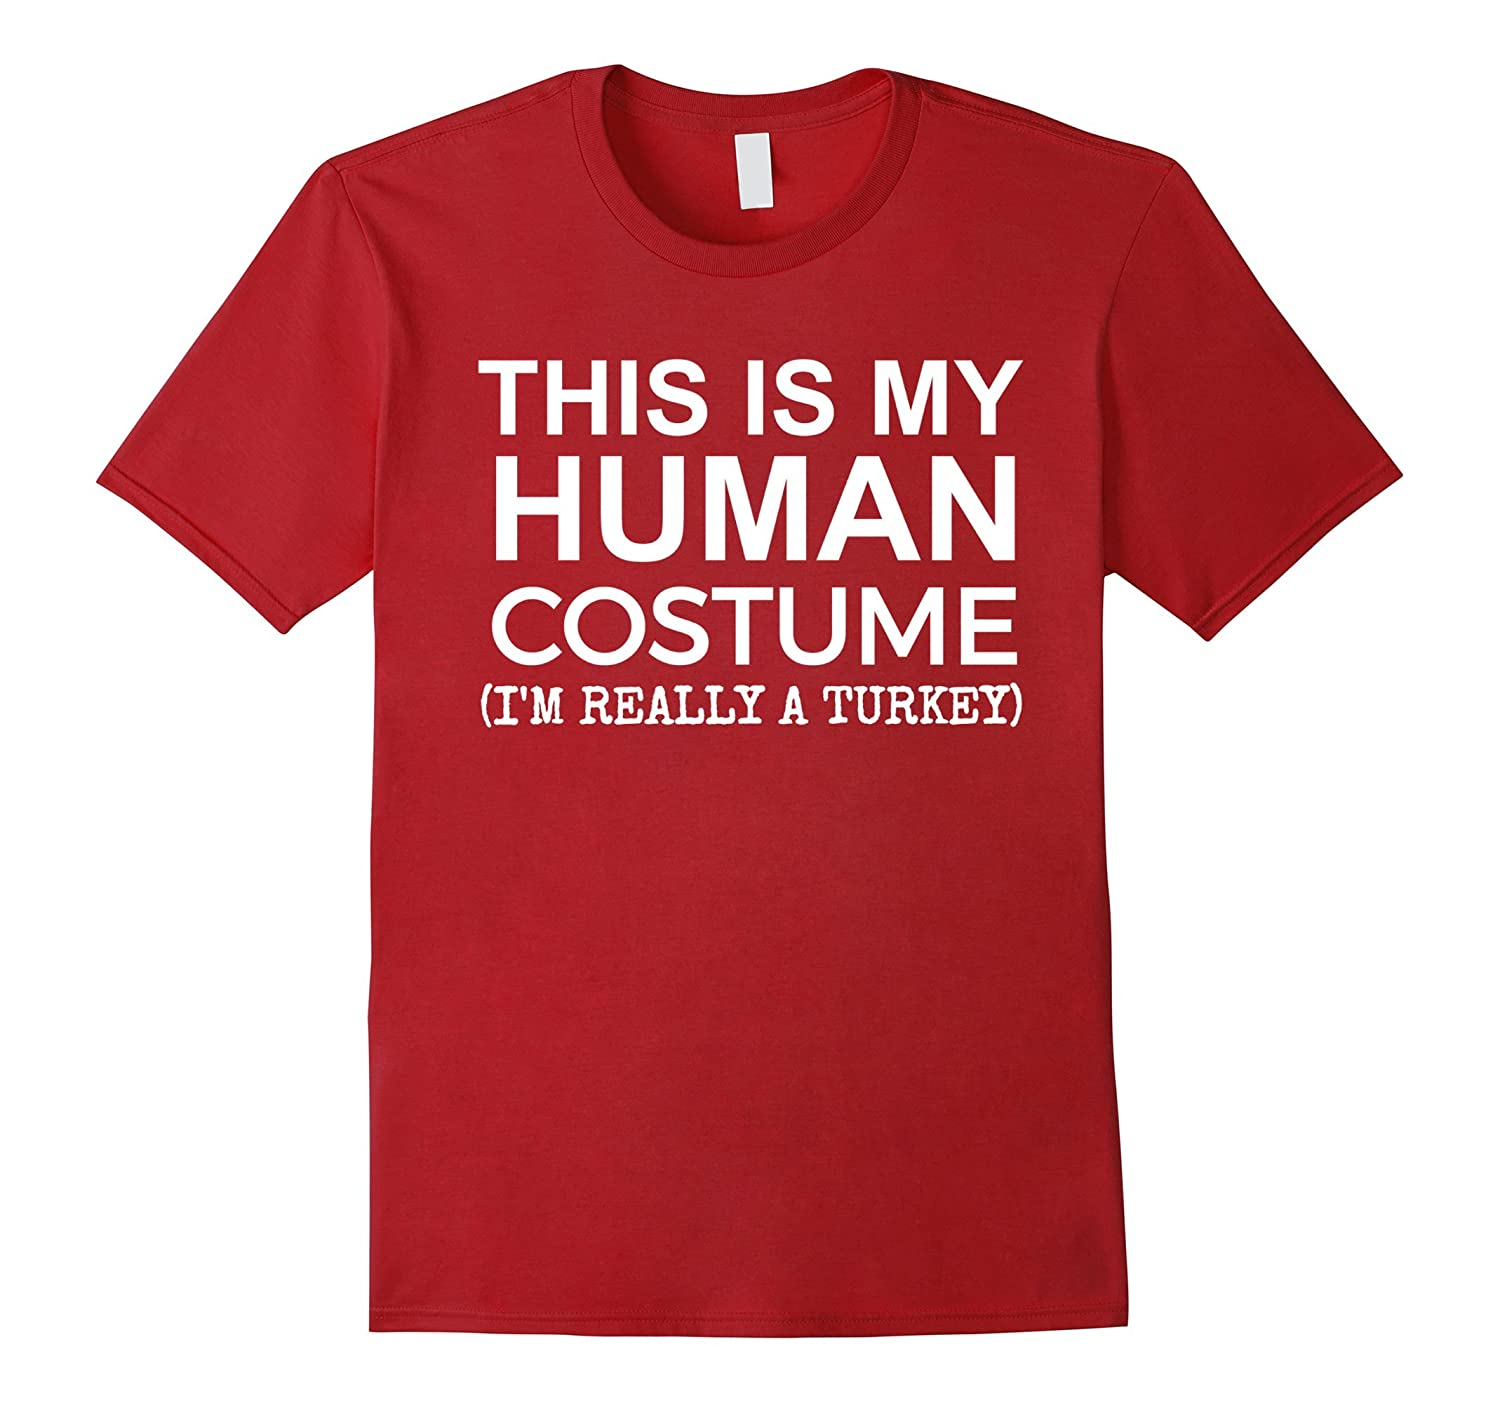 This is My Human Costume, I'm Really a Turkey funny T-shirt-ANZ